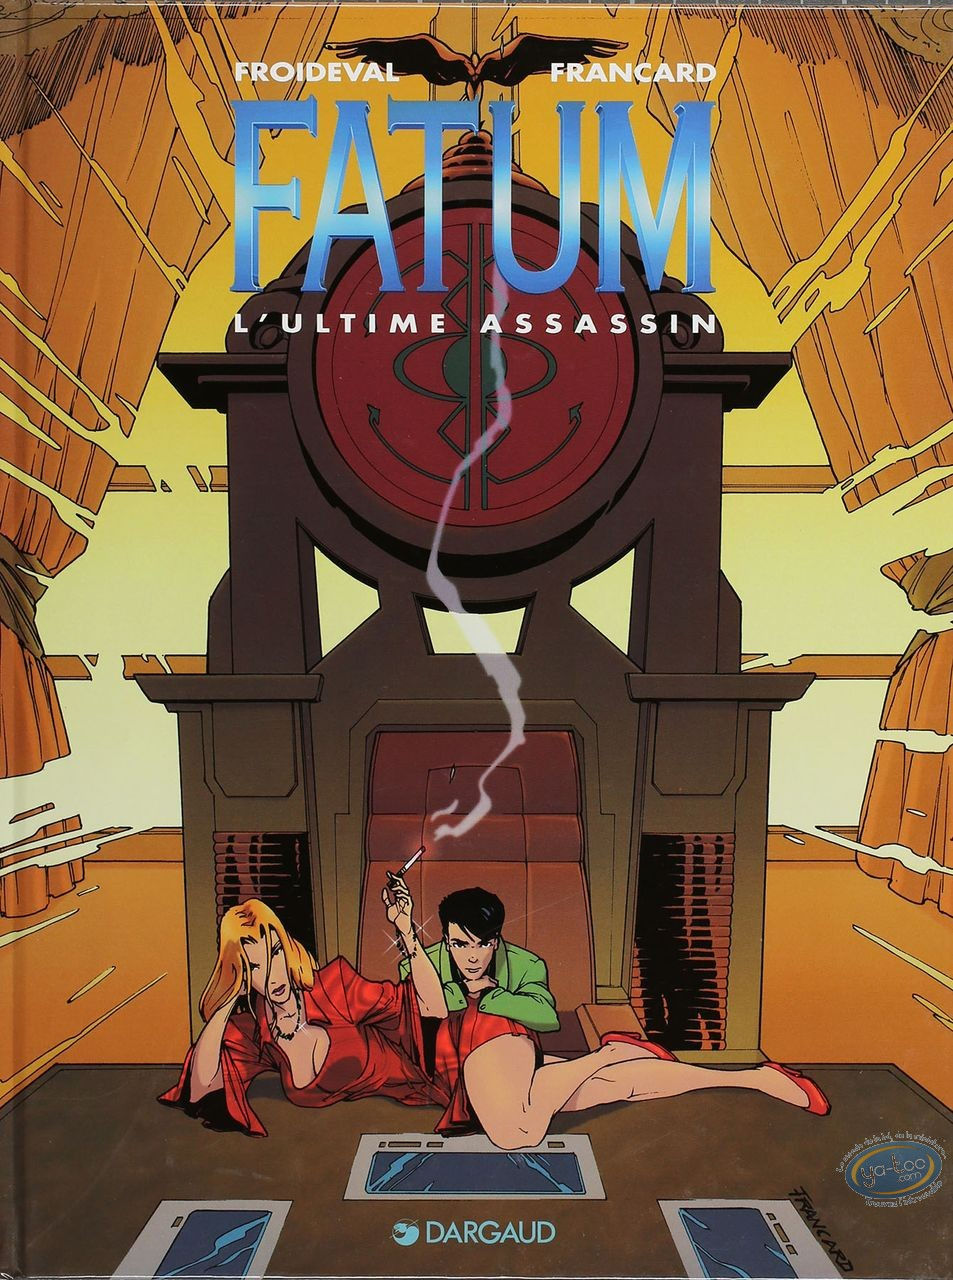 Listed European Comic Books, Fatum : L'Ultime Assassin (very good condition)